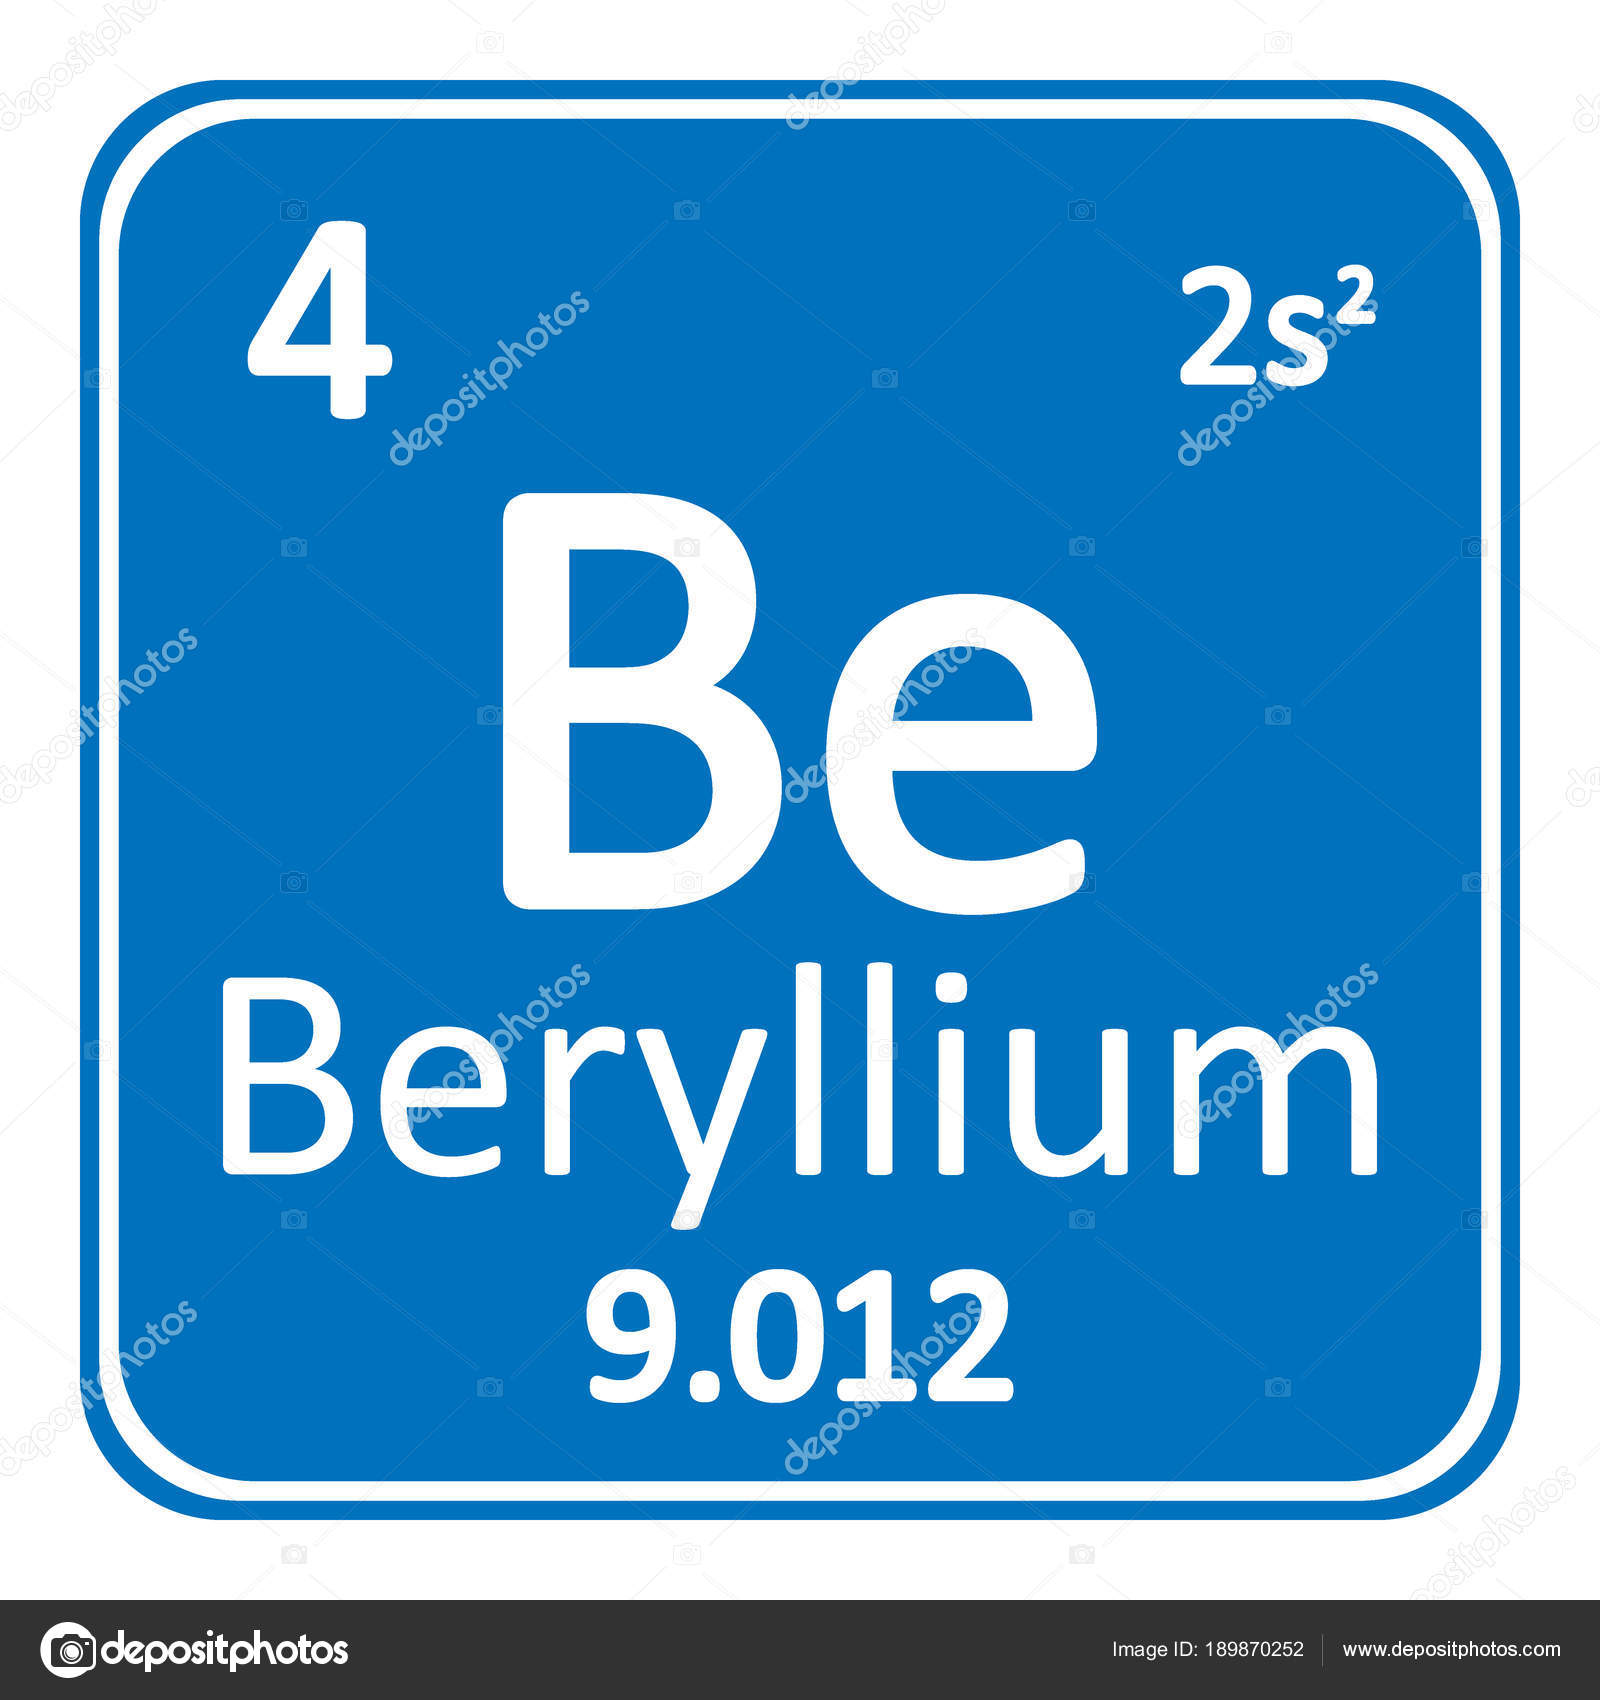 Periodic table element beryllium icon stock vector konstsem periodic table element beryllium icon stock vector urtaz Image collections